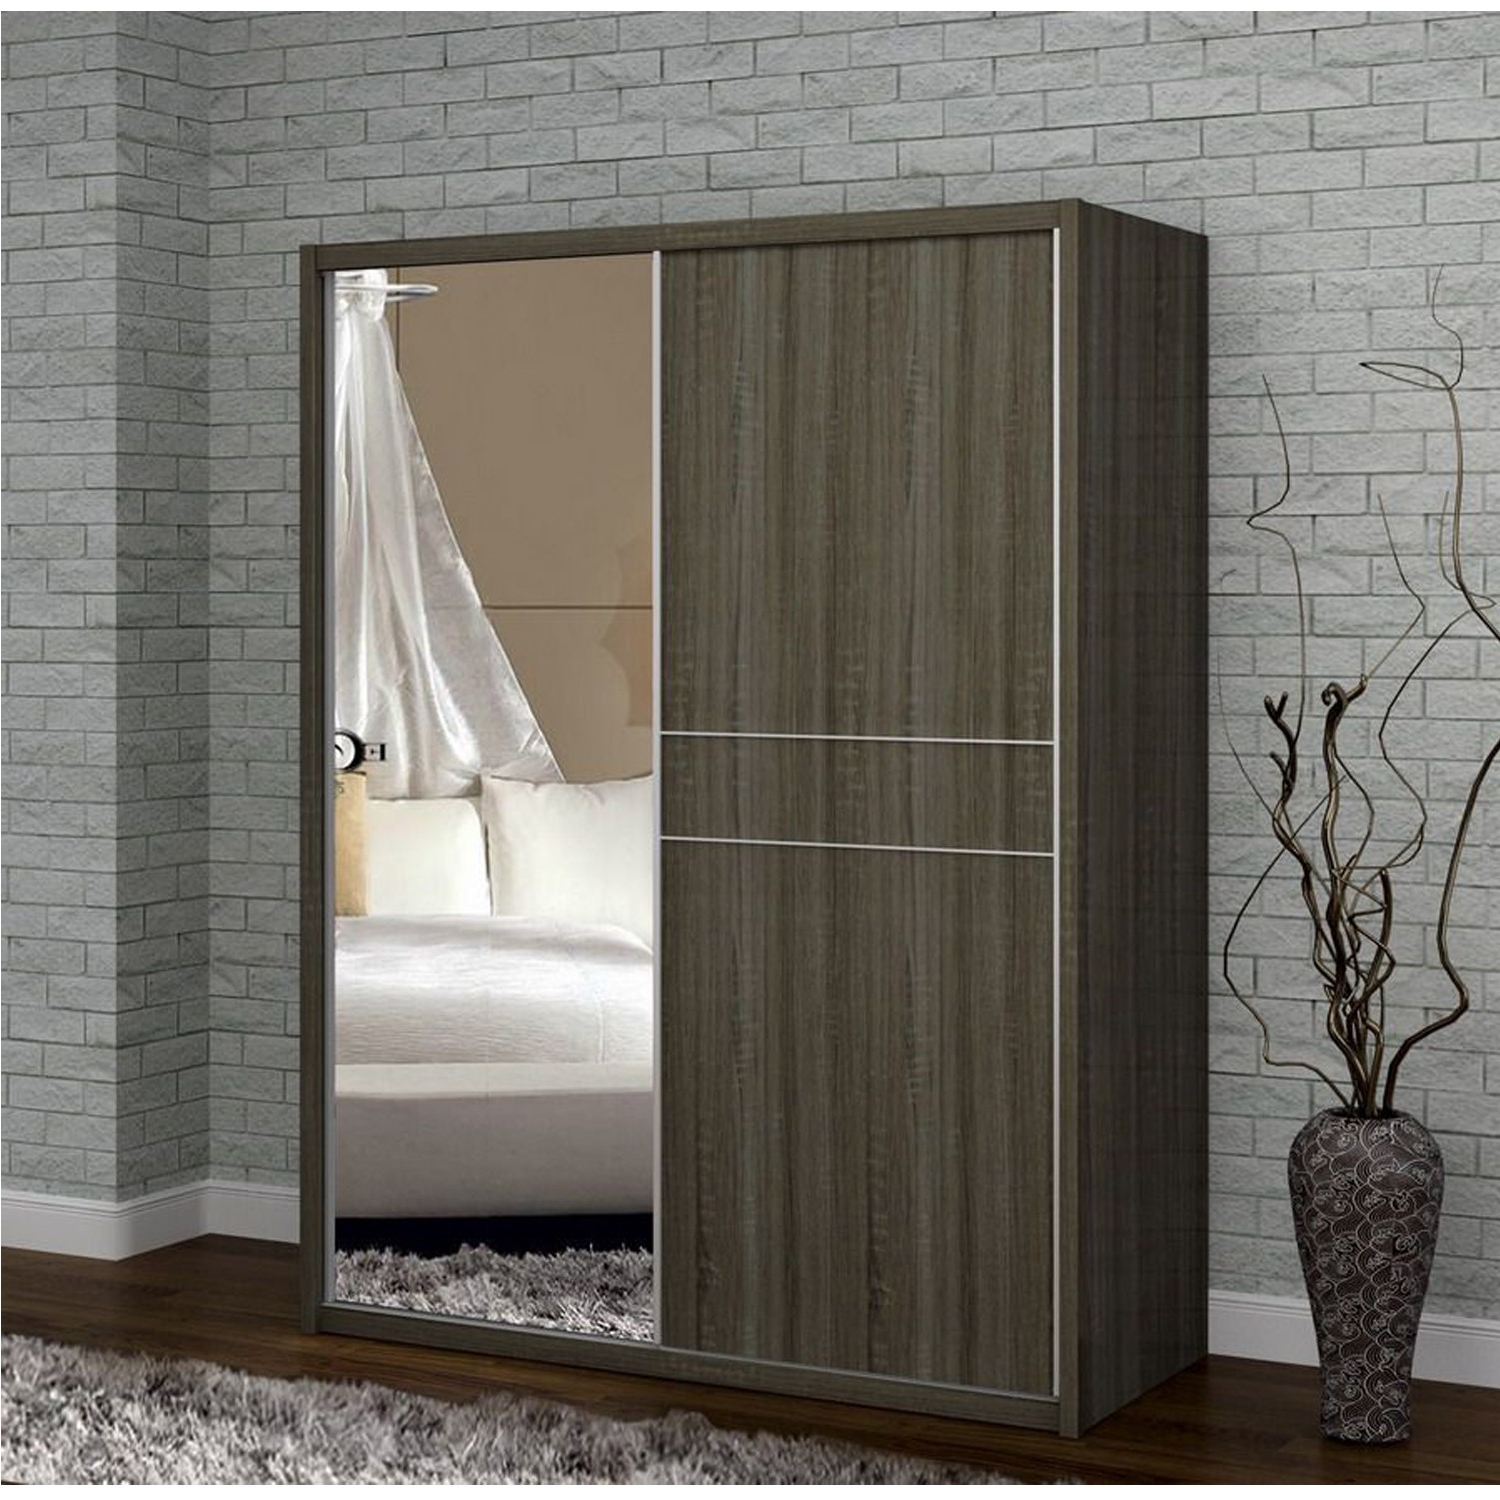 Famous Casa Mia Sliding Door Wardrobe (View 6 of 15)